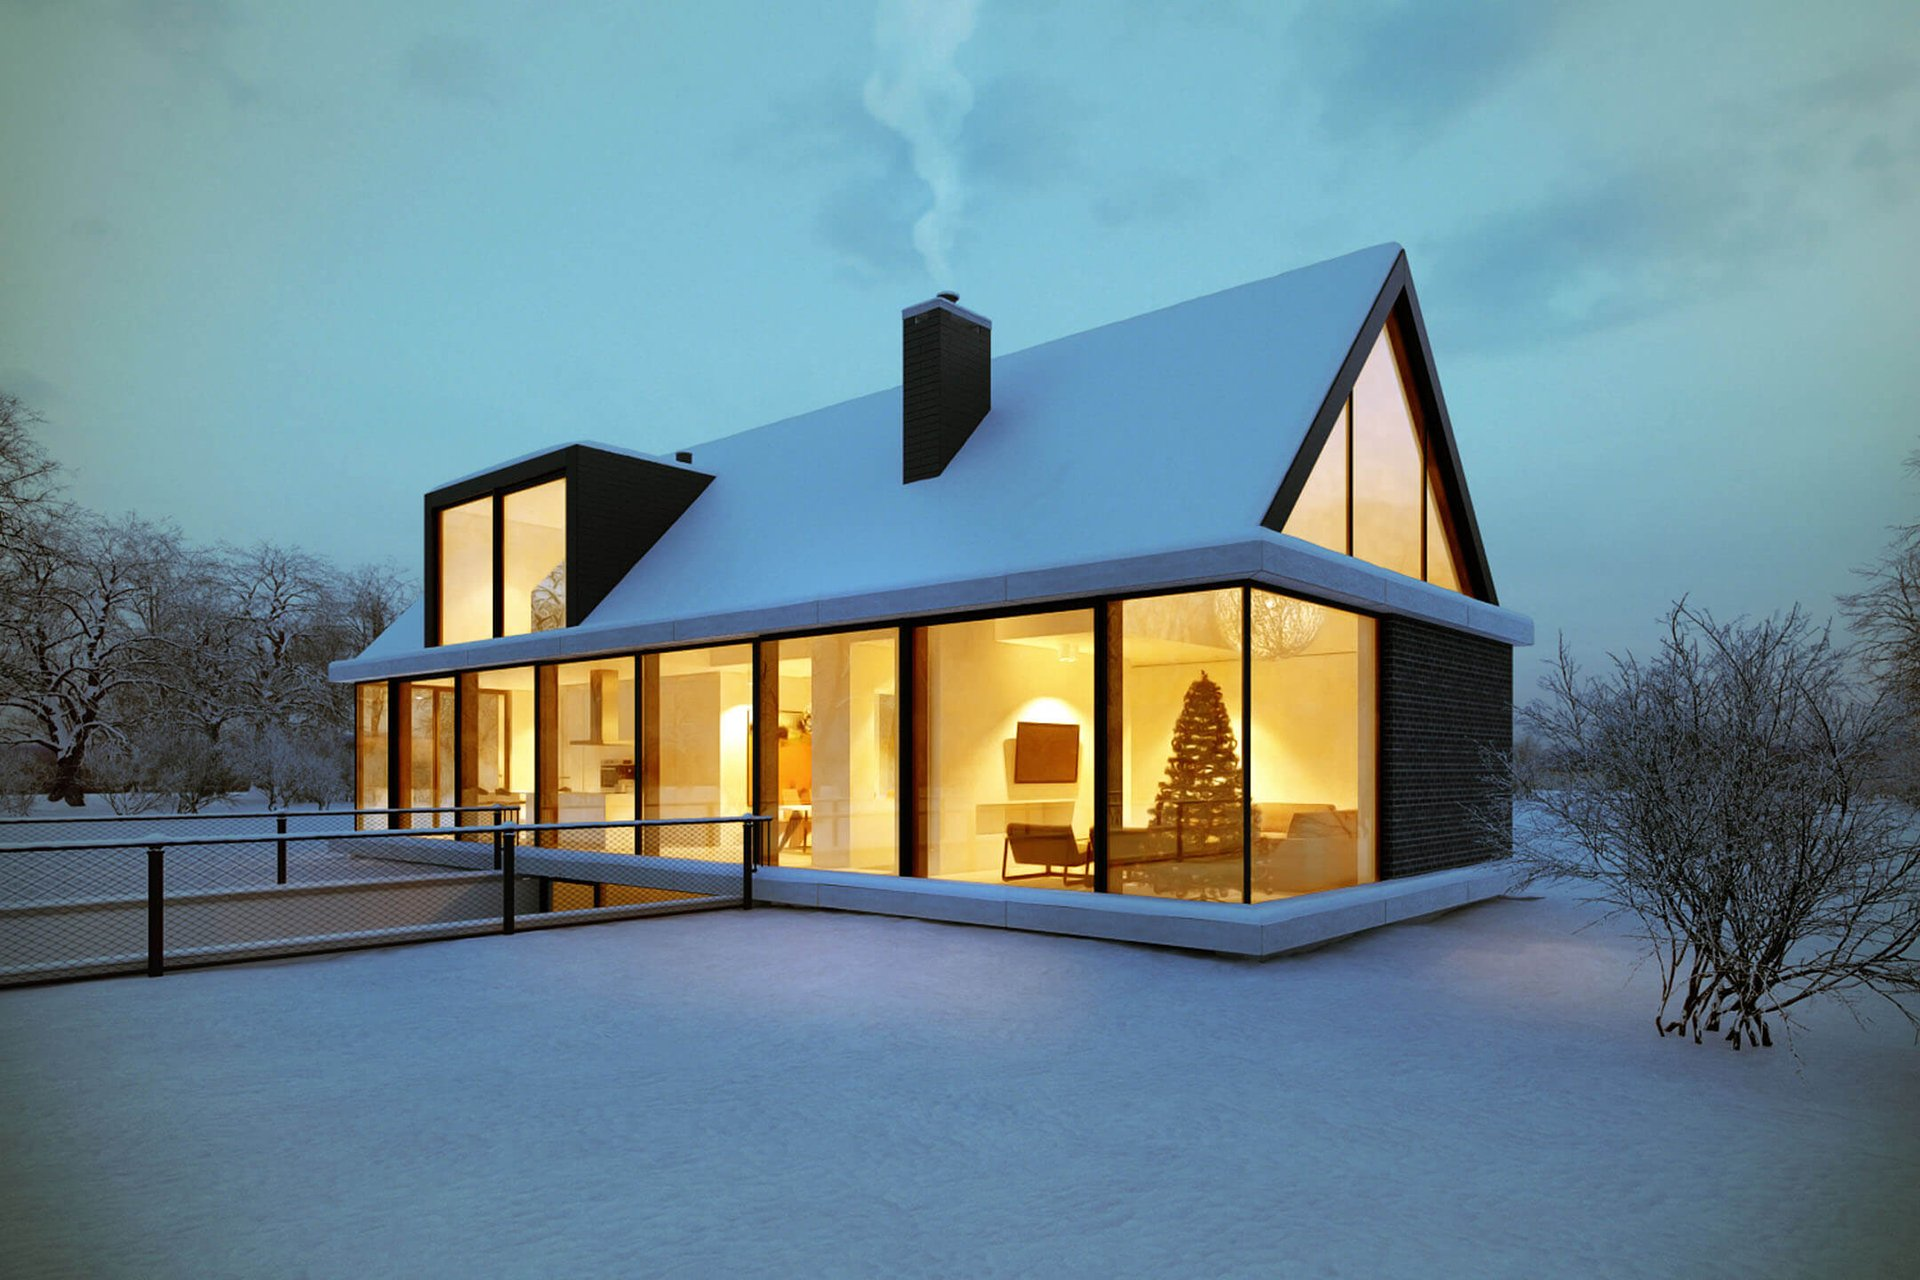 CGI Exteriors of a Modern House in Winter Setting